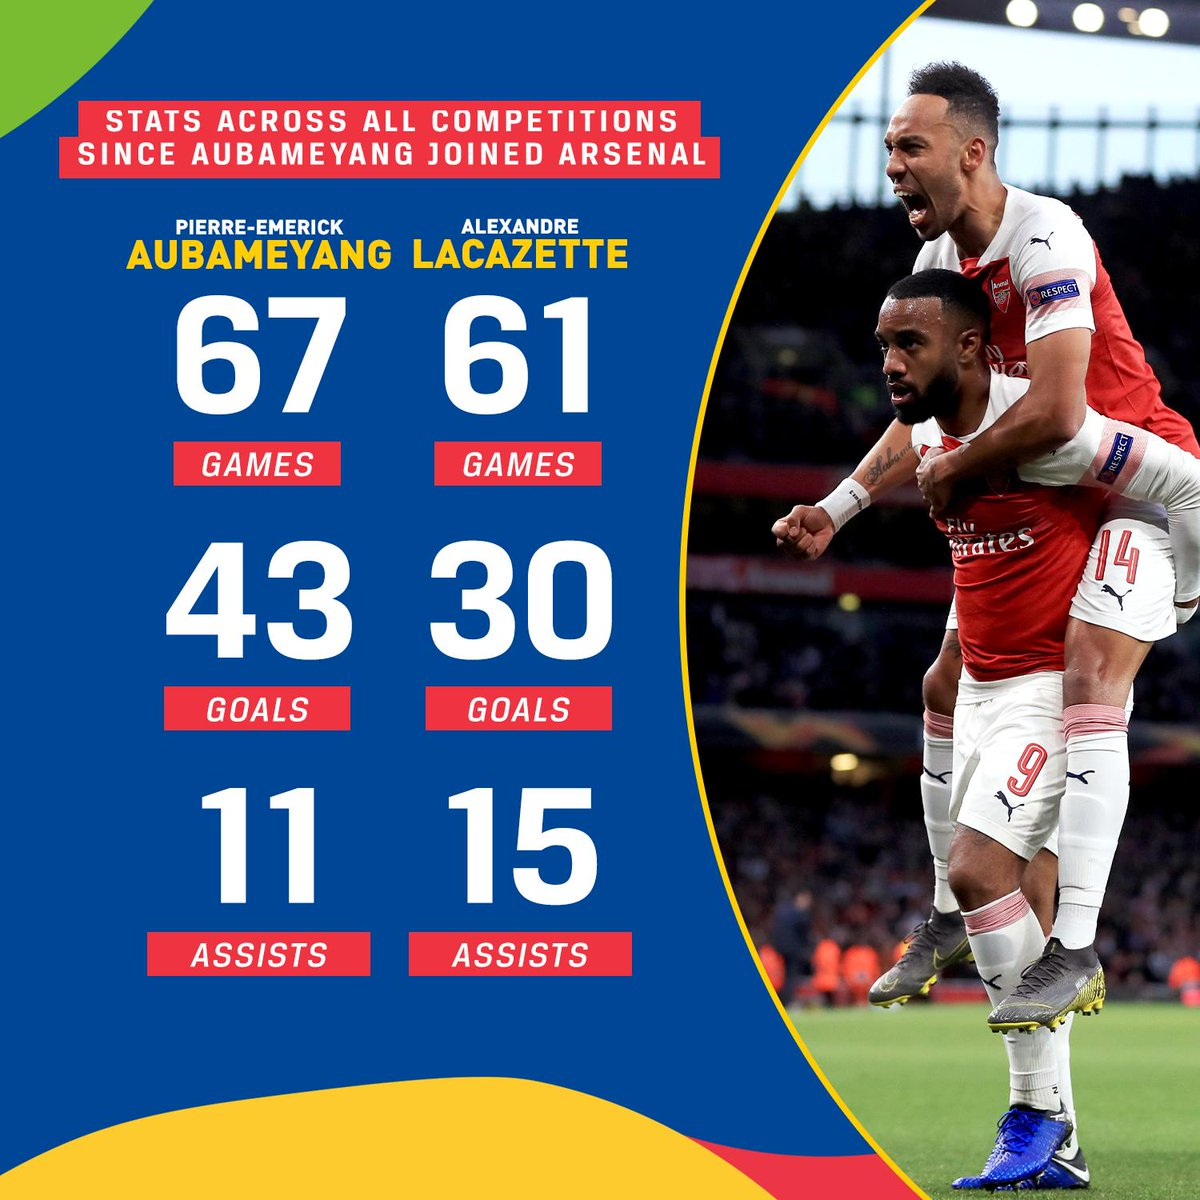 Pierre-Emerick Aubameyang and Alexandre Lacazette across all competitions for Arsenal since Aubameyang's debut: Auba: Laca: • 67 games • 61 games • 43 goals • 30 goals • 11 assists • 15 assists The dynamic duo.